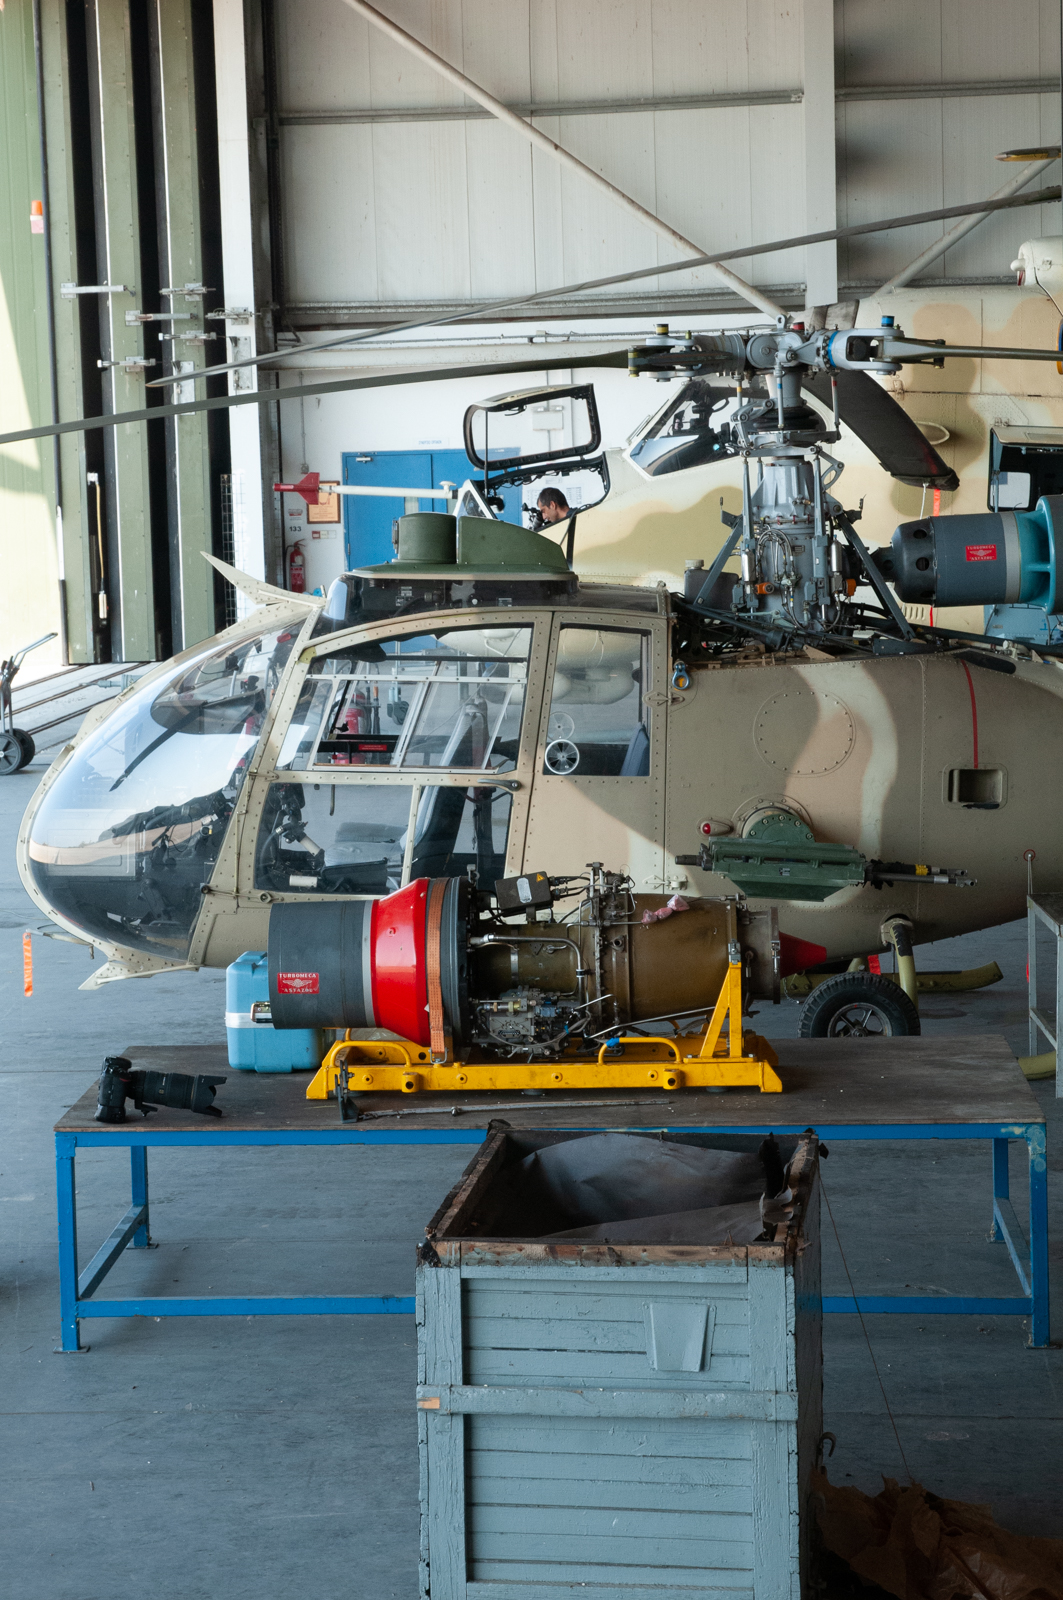 © Duncan Monk - Cypriot Air Command Mil Mi-35P Hind F and Gazelle in maintenance